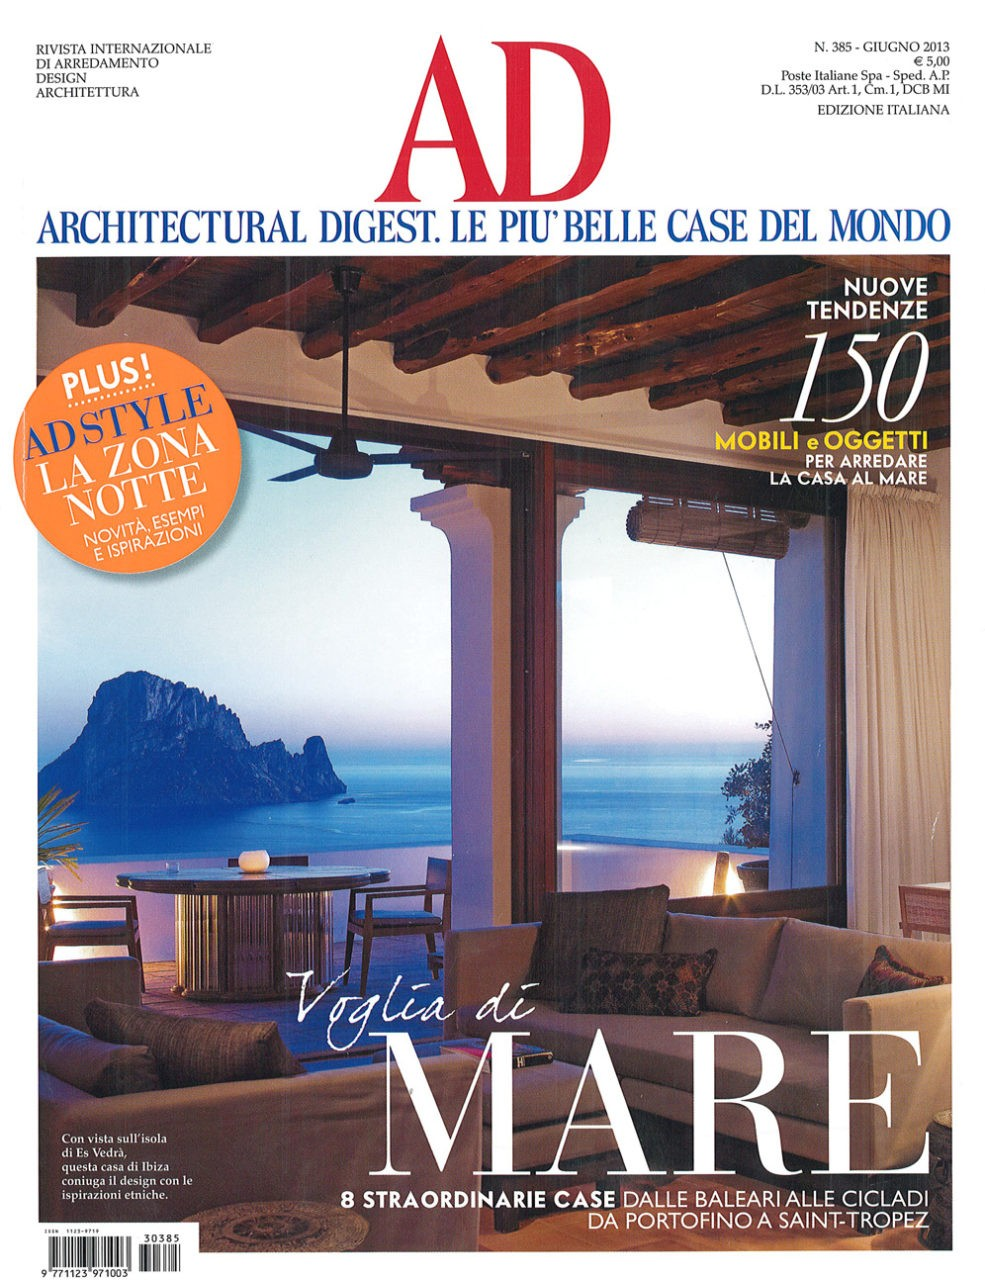 https://www.saota.com/wp-content/uploads/2018/01/2013_June_IT_ArchitecturalDigest_SAOTA_Page_1.jpg